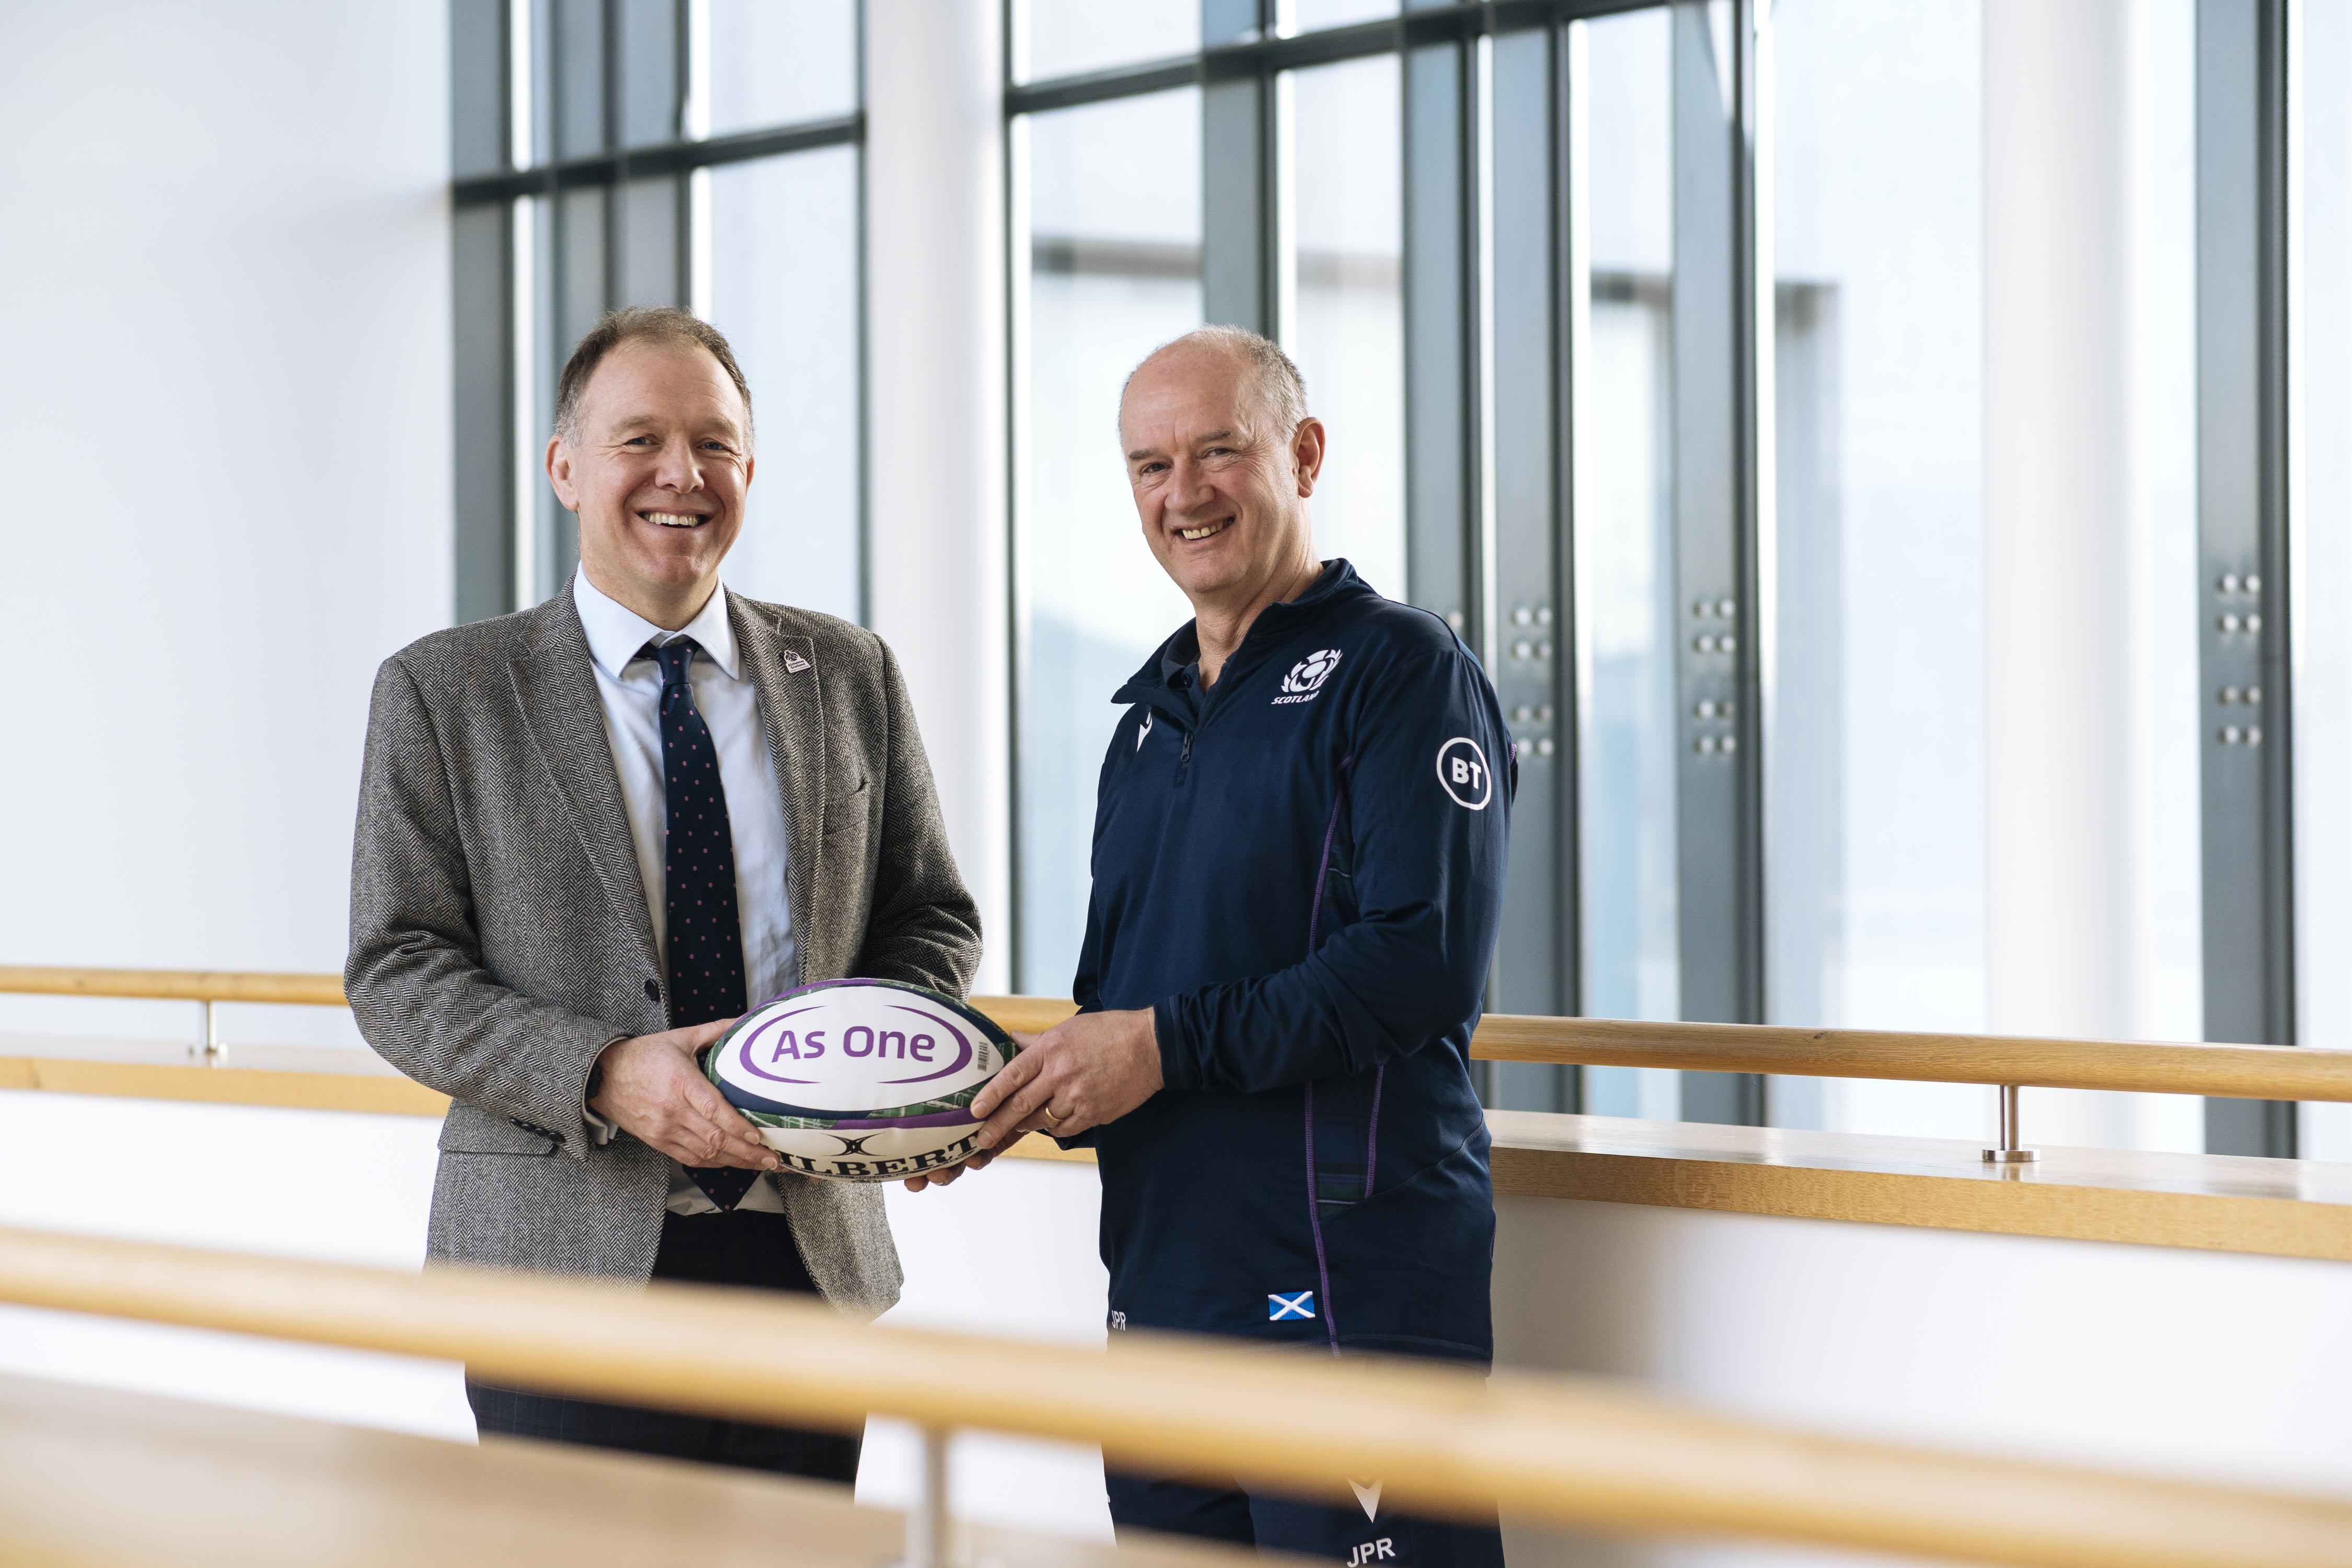 Spire Edinburgh Hospitals continue healthcare partnership with Scottish Rugby